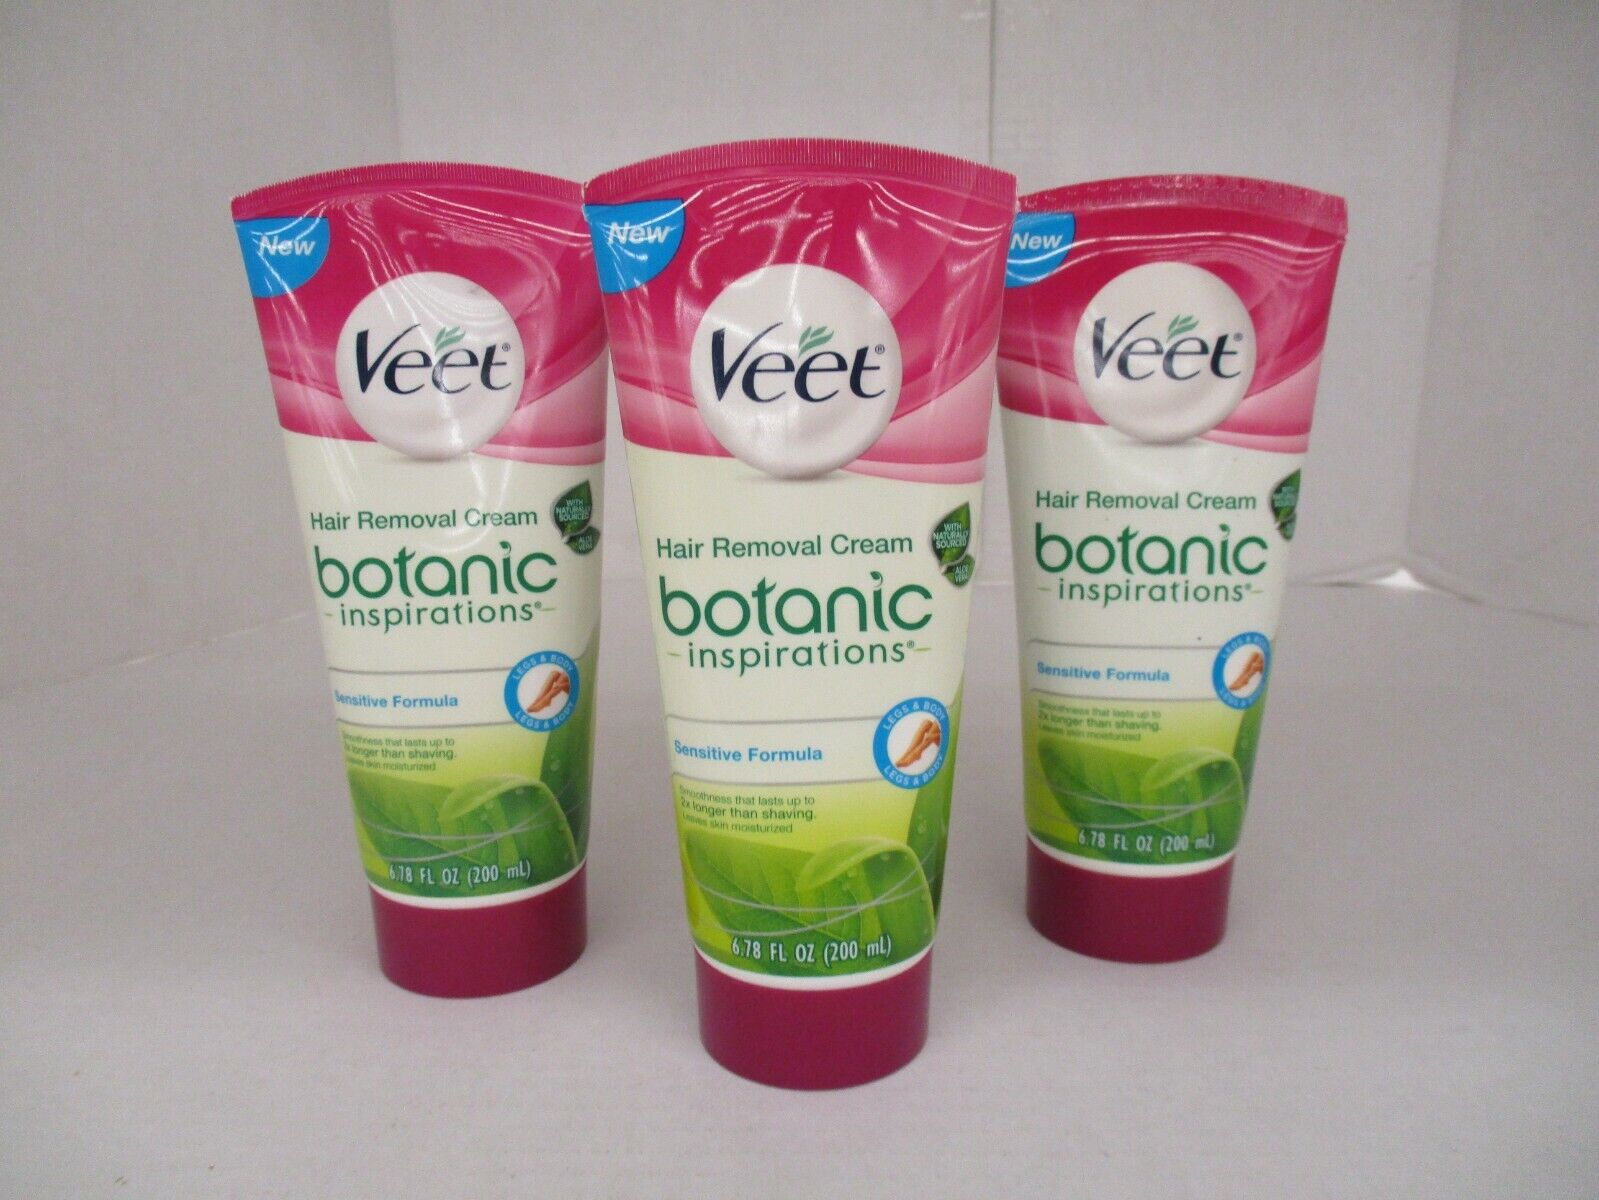 Veet Botanic Inspirations Gel Cream, 6.78 oz., for Legs & Bo